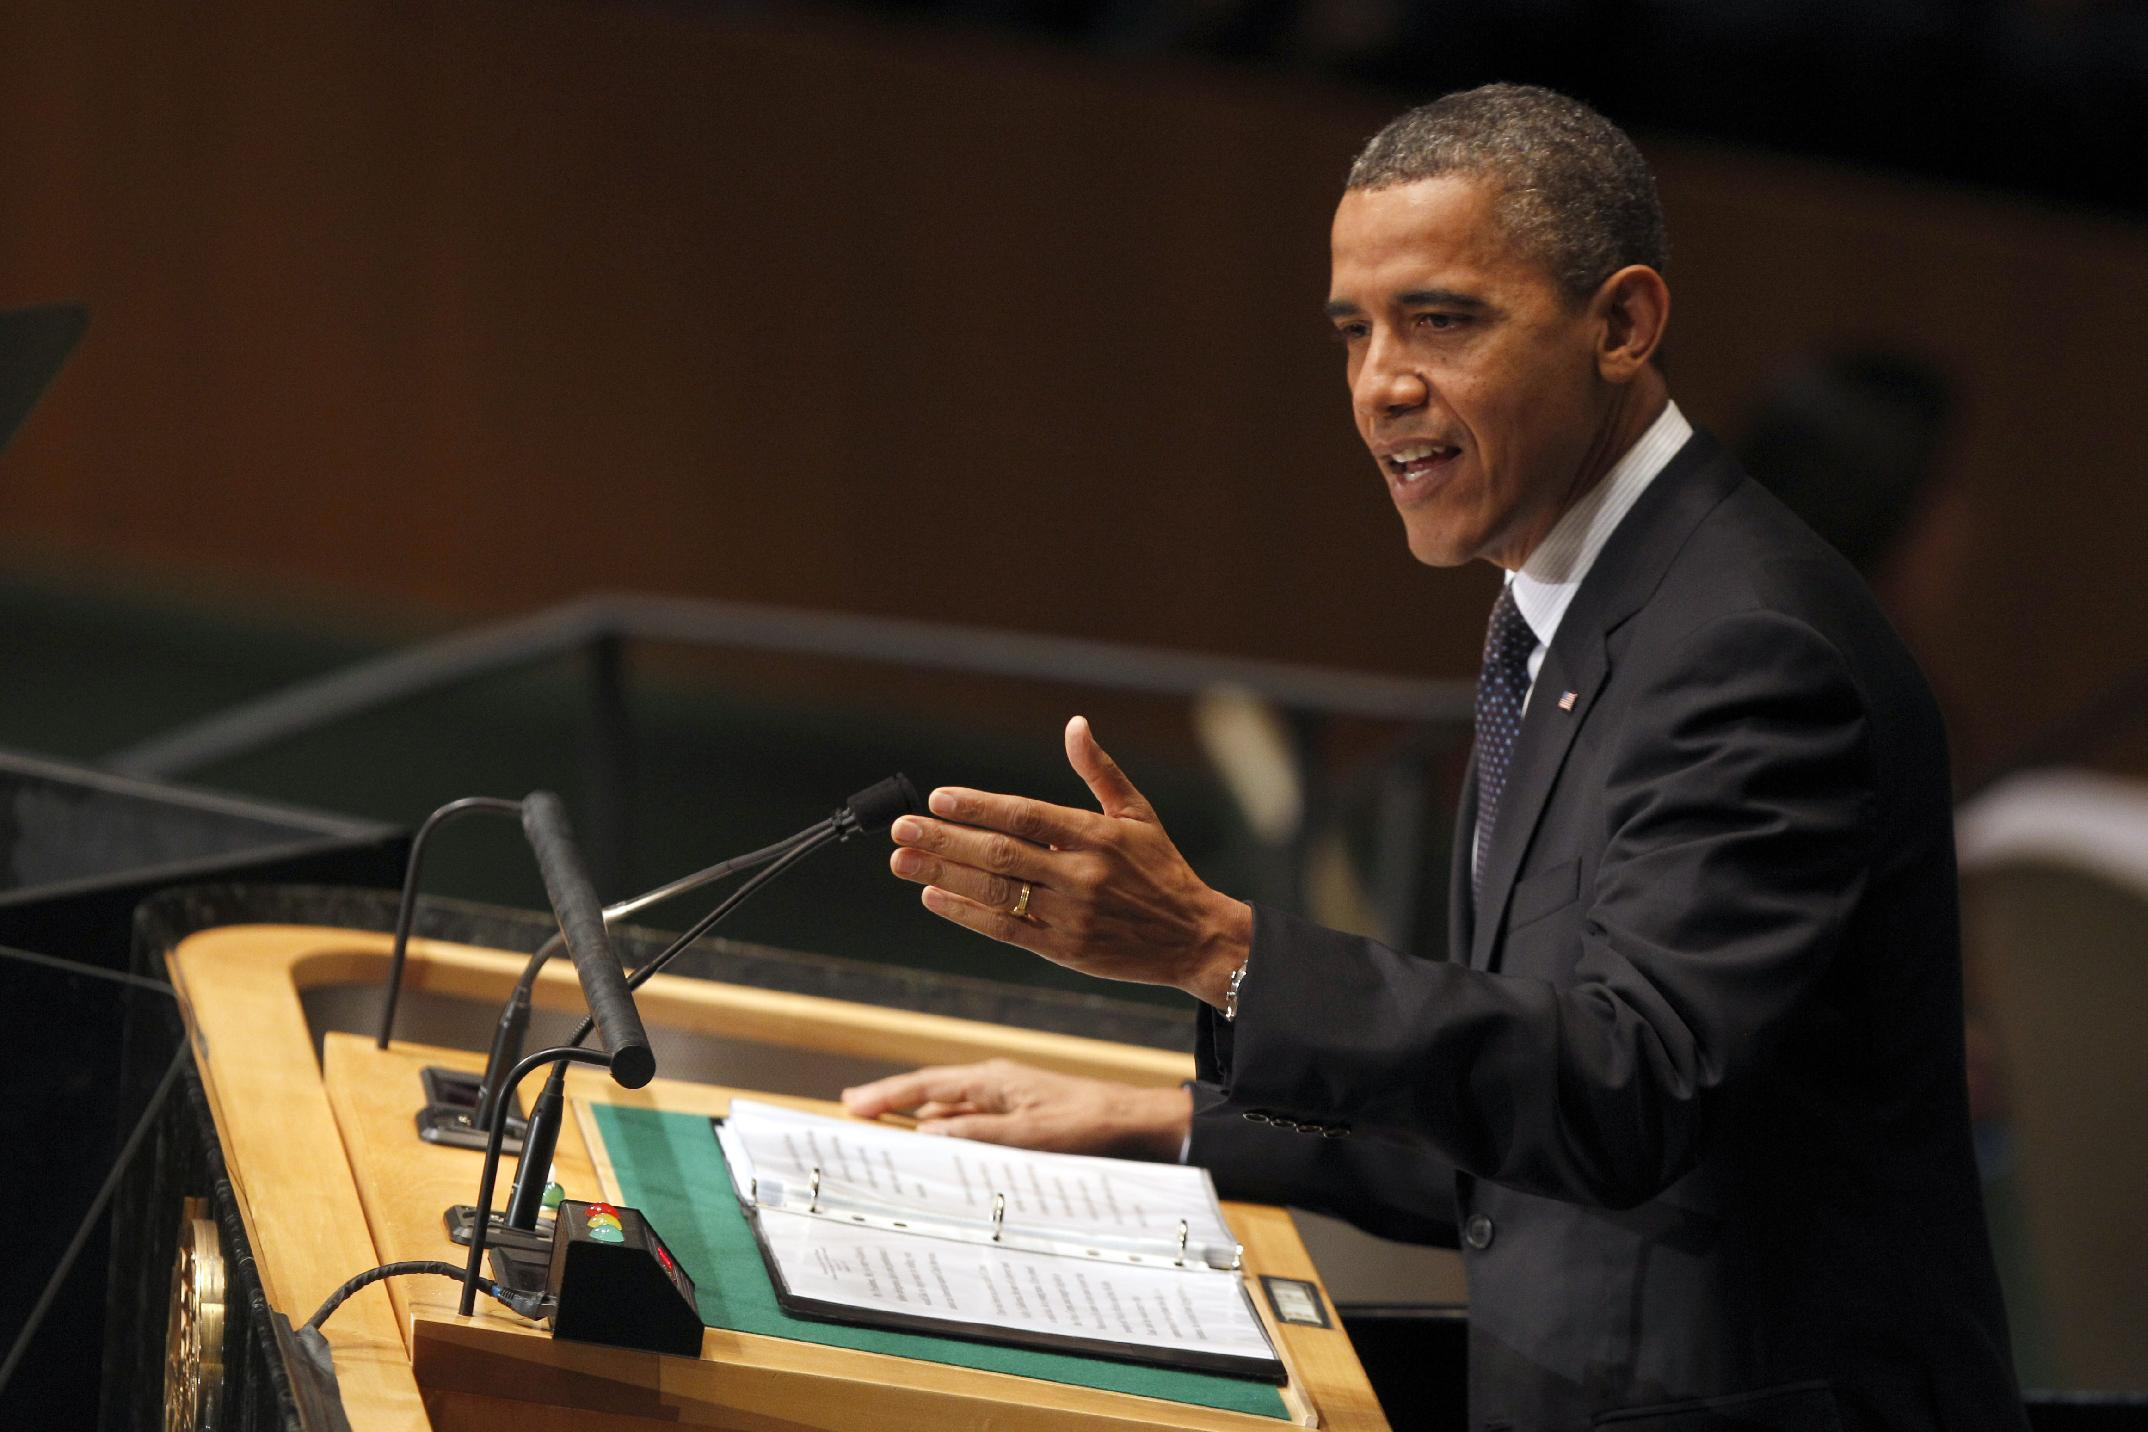 President Barack Obama addresses the 67th session of the United Nations General Assembly at U.N. headquarters Tuesday, Sept. 25, 2012. (AP Photo/Mary Altaffer)